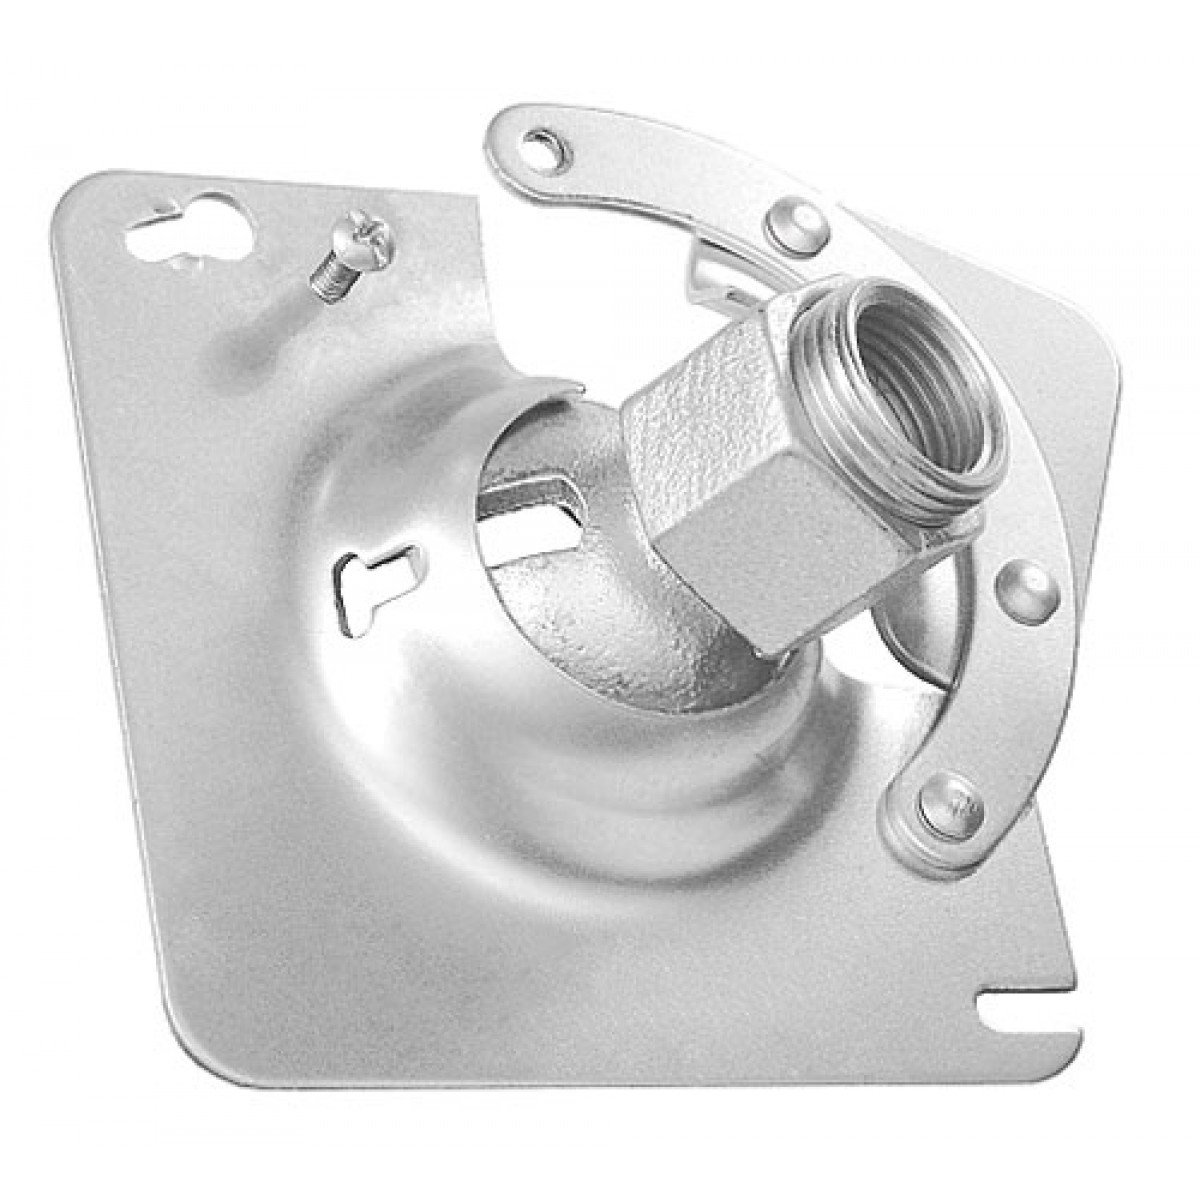 2 Pcs, Hands Free 4 In. Square Box Swivel Hanger for 1/2 In. Or 3/4 In. Pipe, Zinc Plated Steel to Hang Light Fixtures, Security Cameras, Speakers & Electrical/Electronic Devices